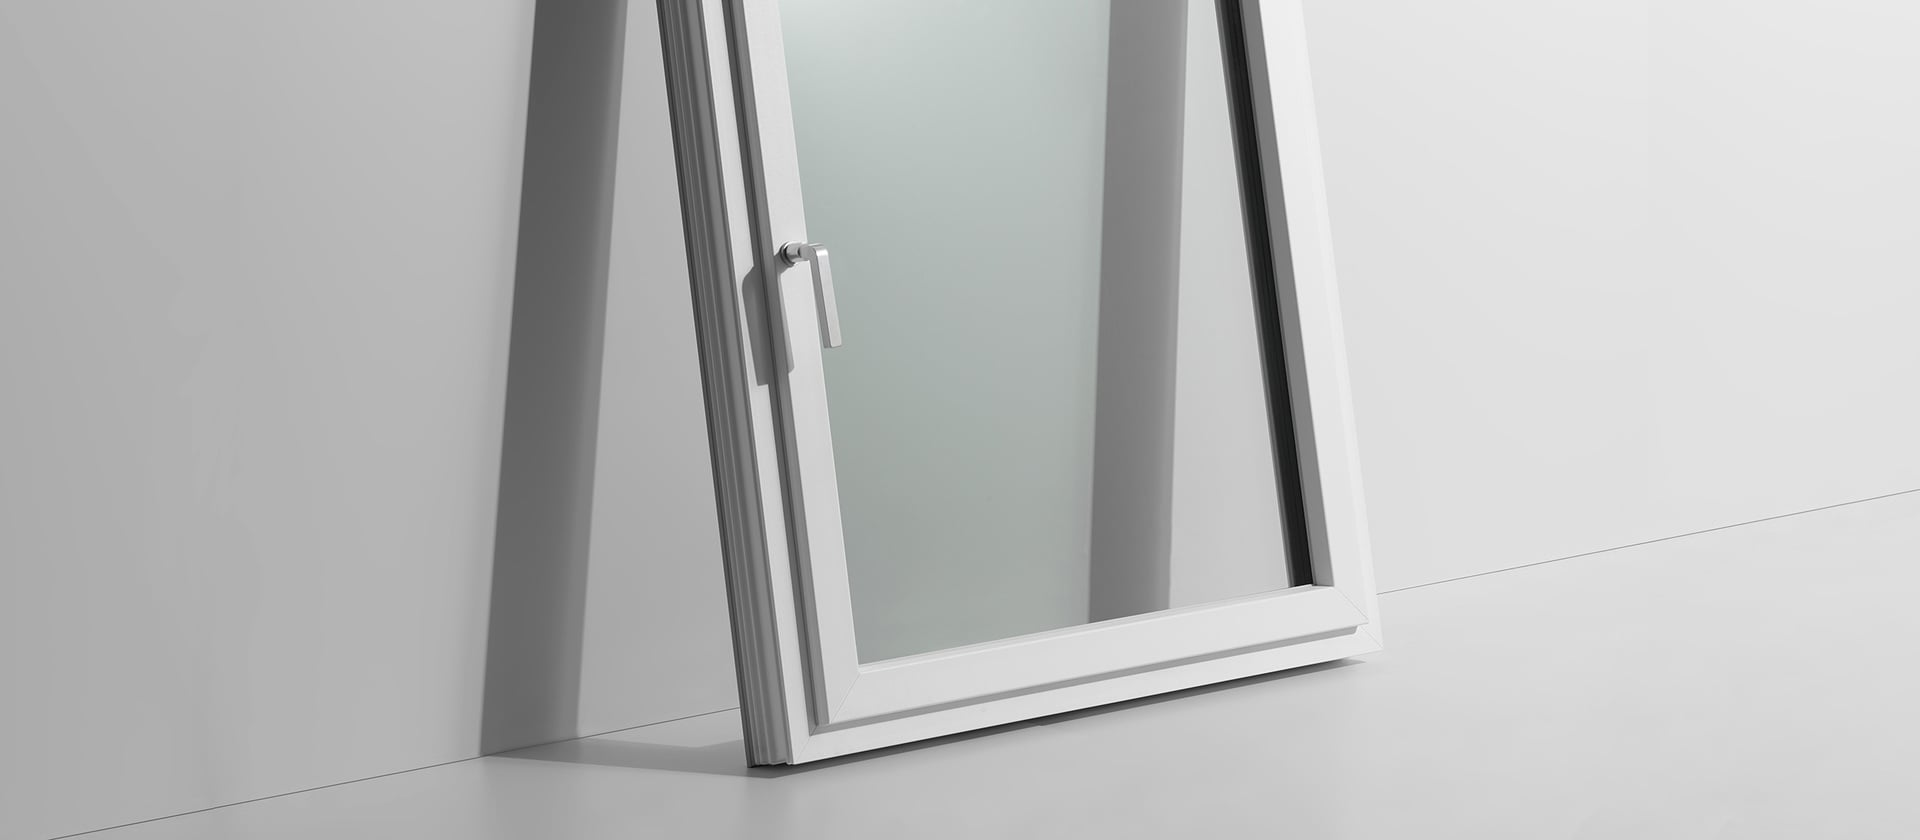 FIN-Window is now Finstral's leading profile system.